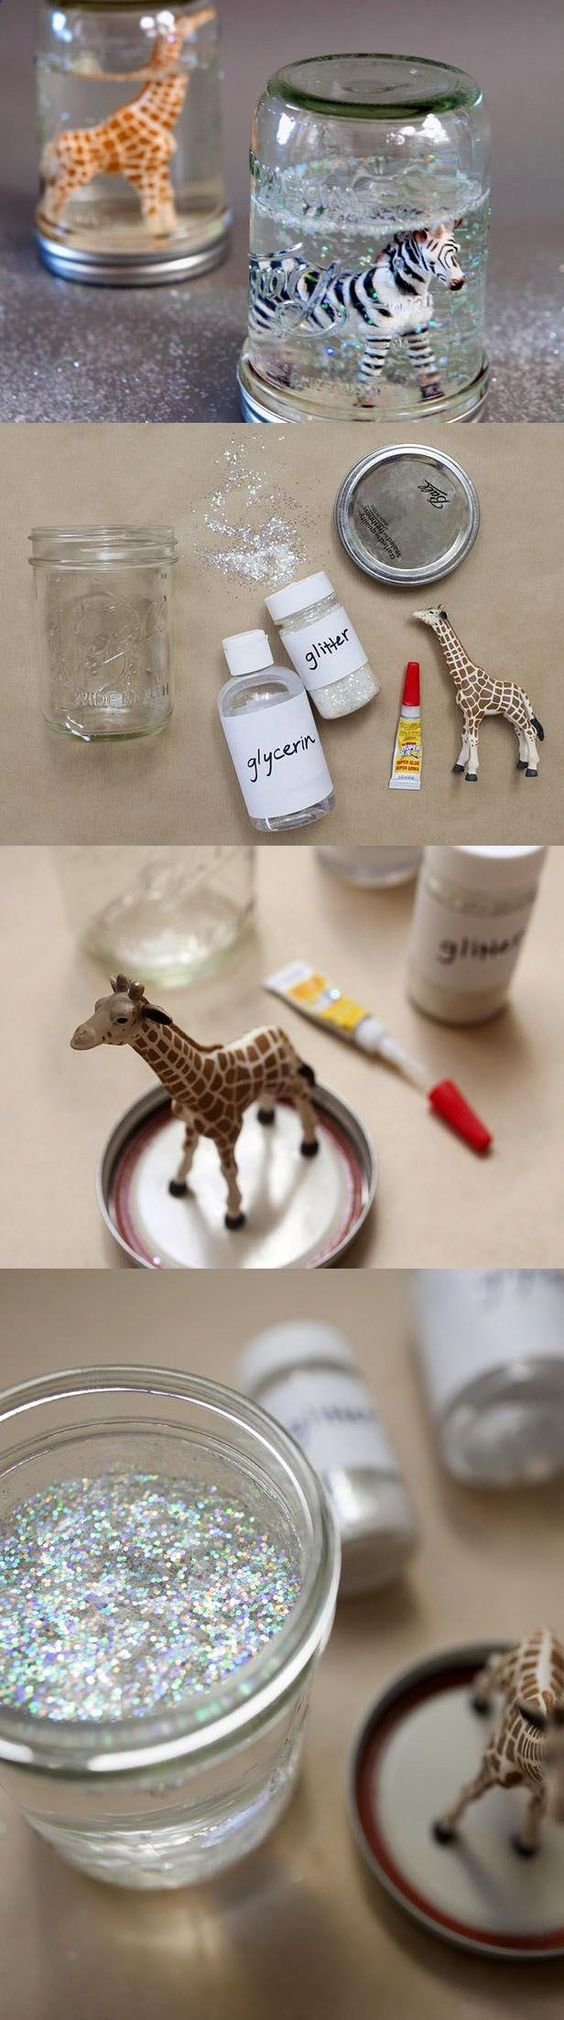 http://www.jexshop.com/ DIY KIDS: Easy To Make! Would love to do this with my siblings and the kids I babysit!